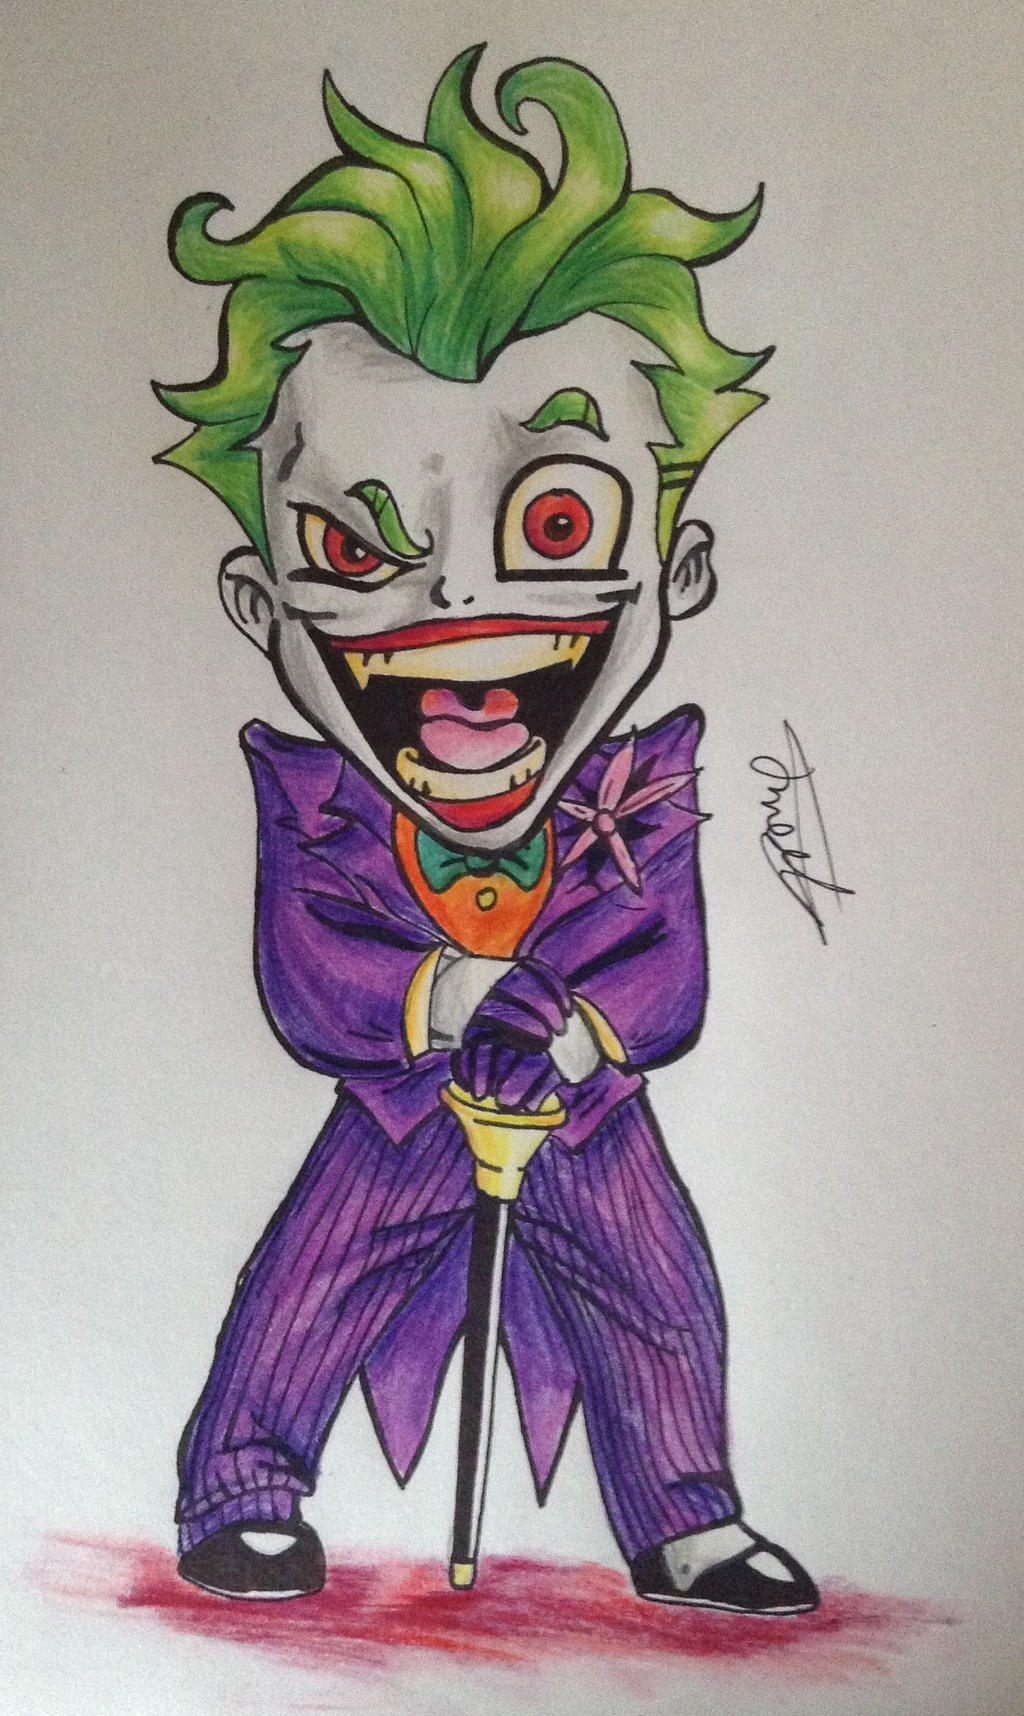 Joker Scribble Drawing : The joker cartoon by cy erwolf on deviantart